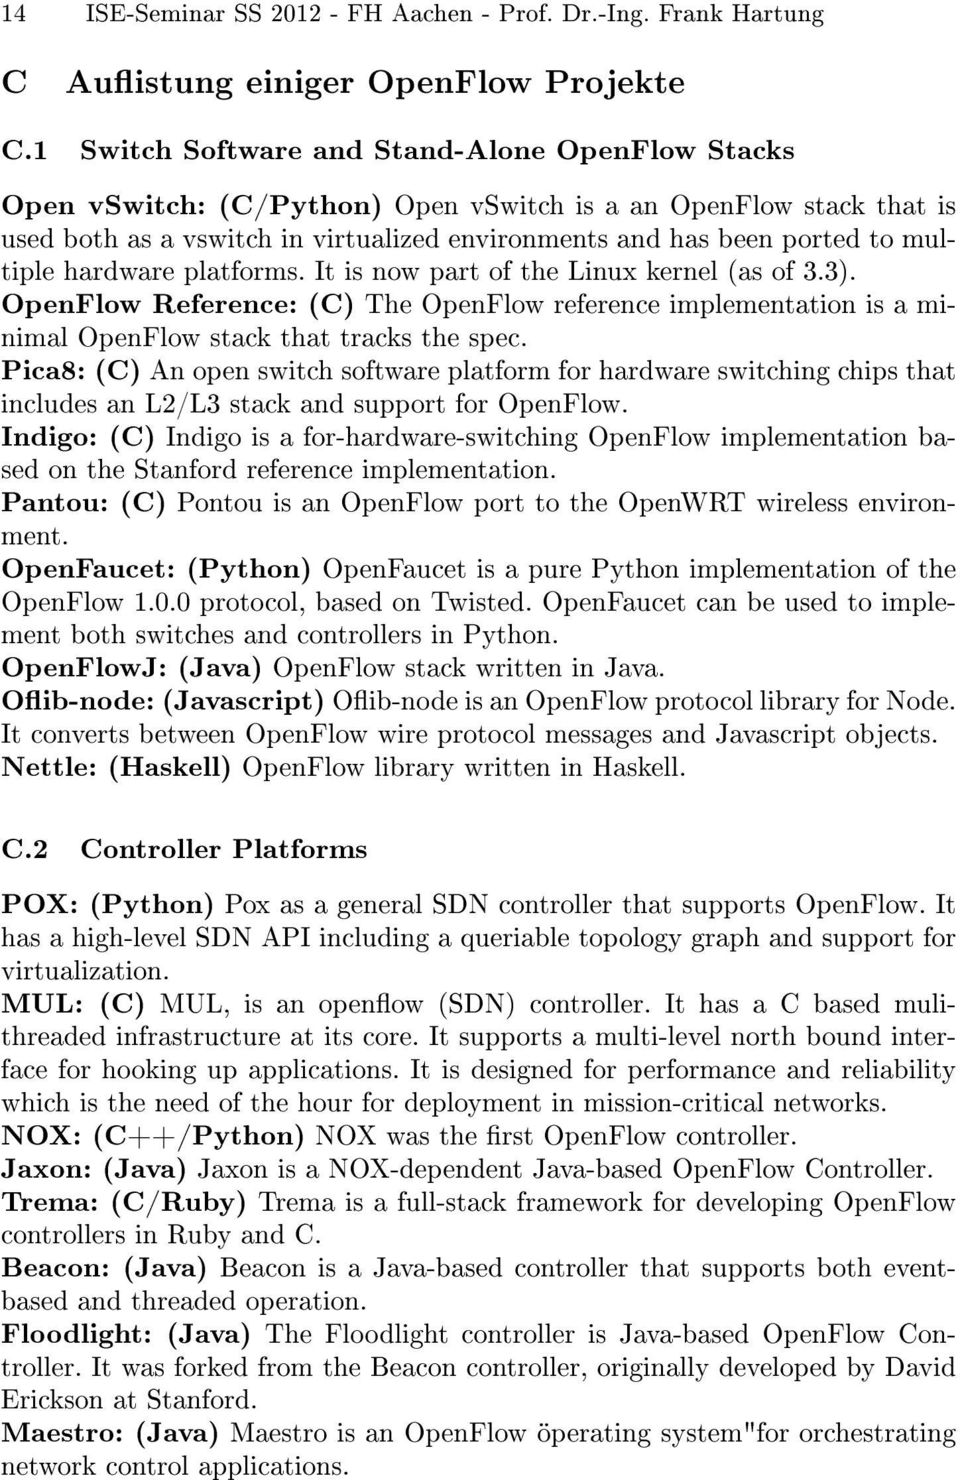 multiple hardware platforms. It is now part of the Linux kernel (as of 3.3). OpenFlow Reference: (C) The OpenFlow reference implementation is a minimal OpenFlow stack that tracks the spec.